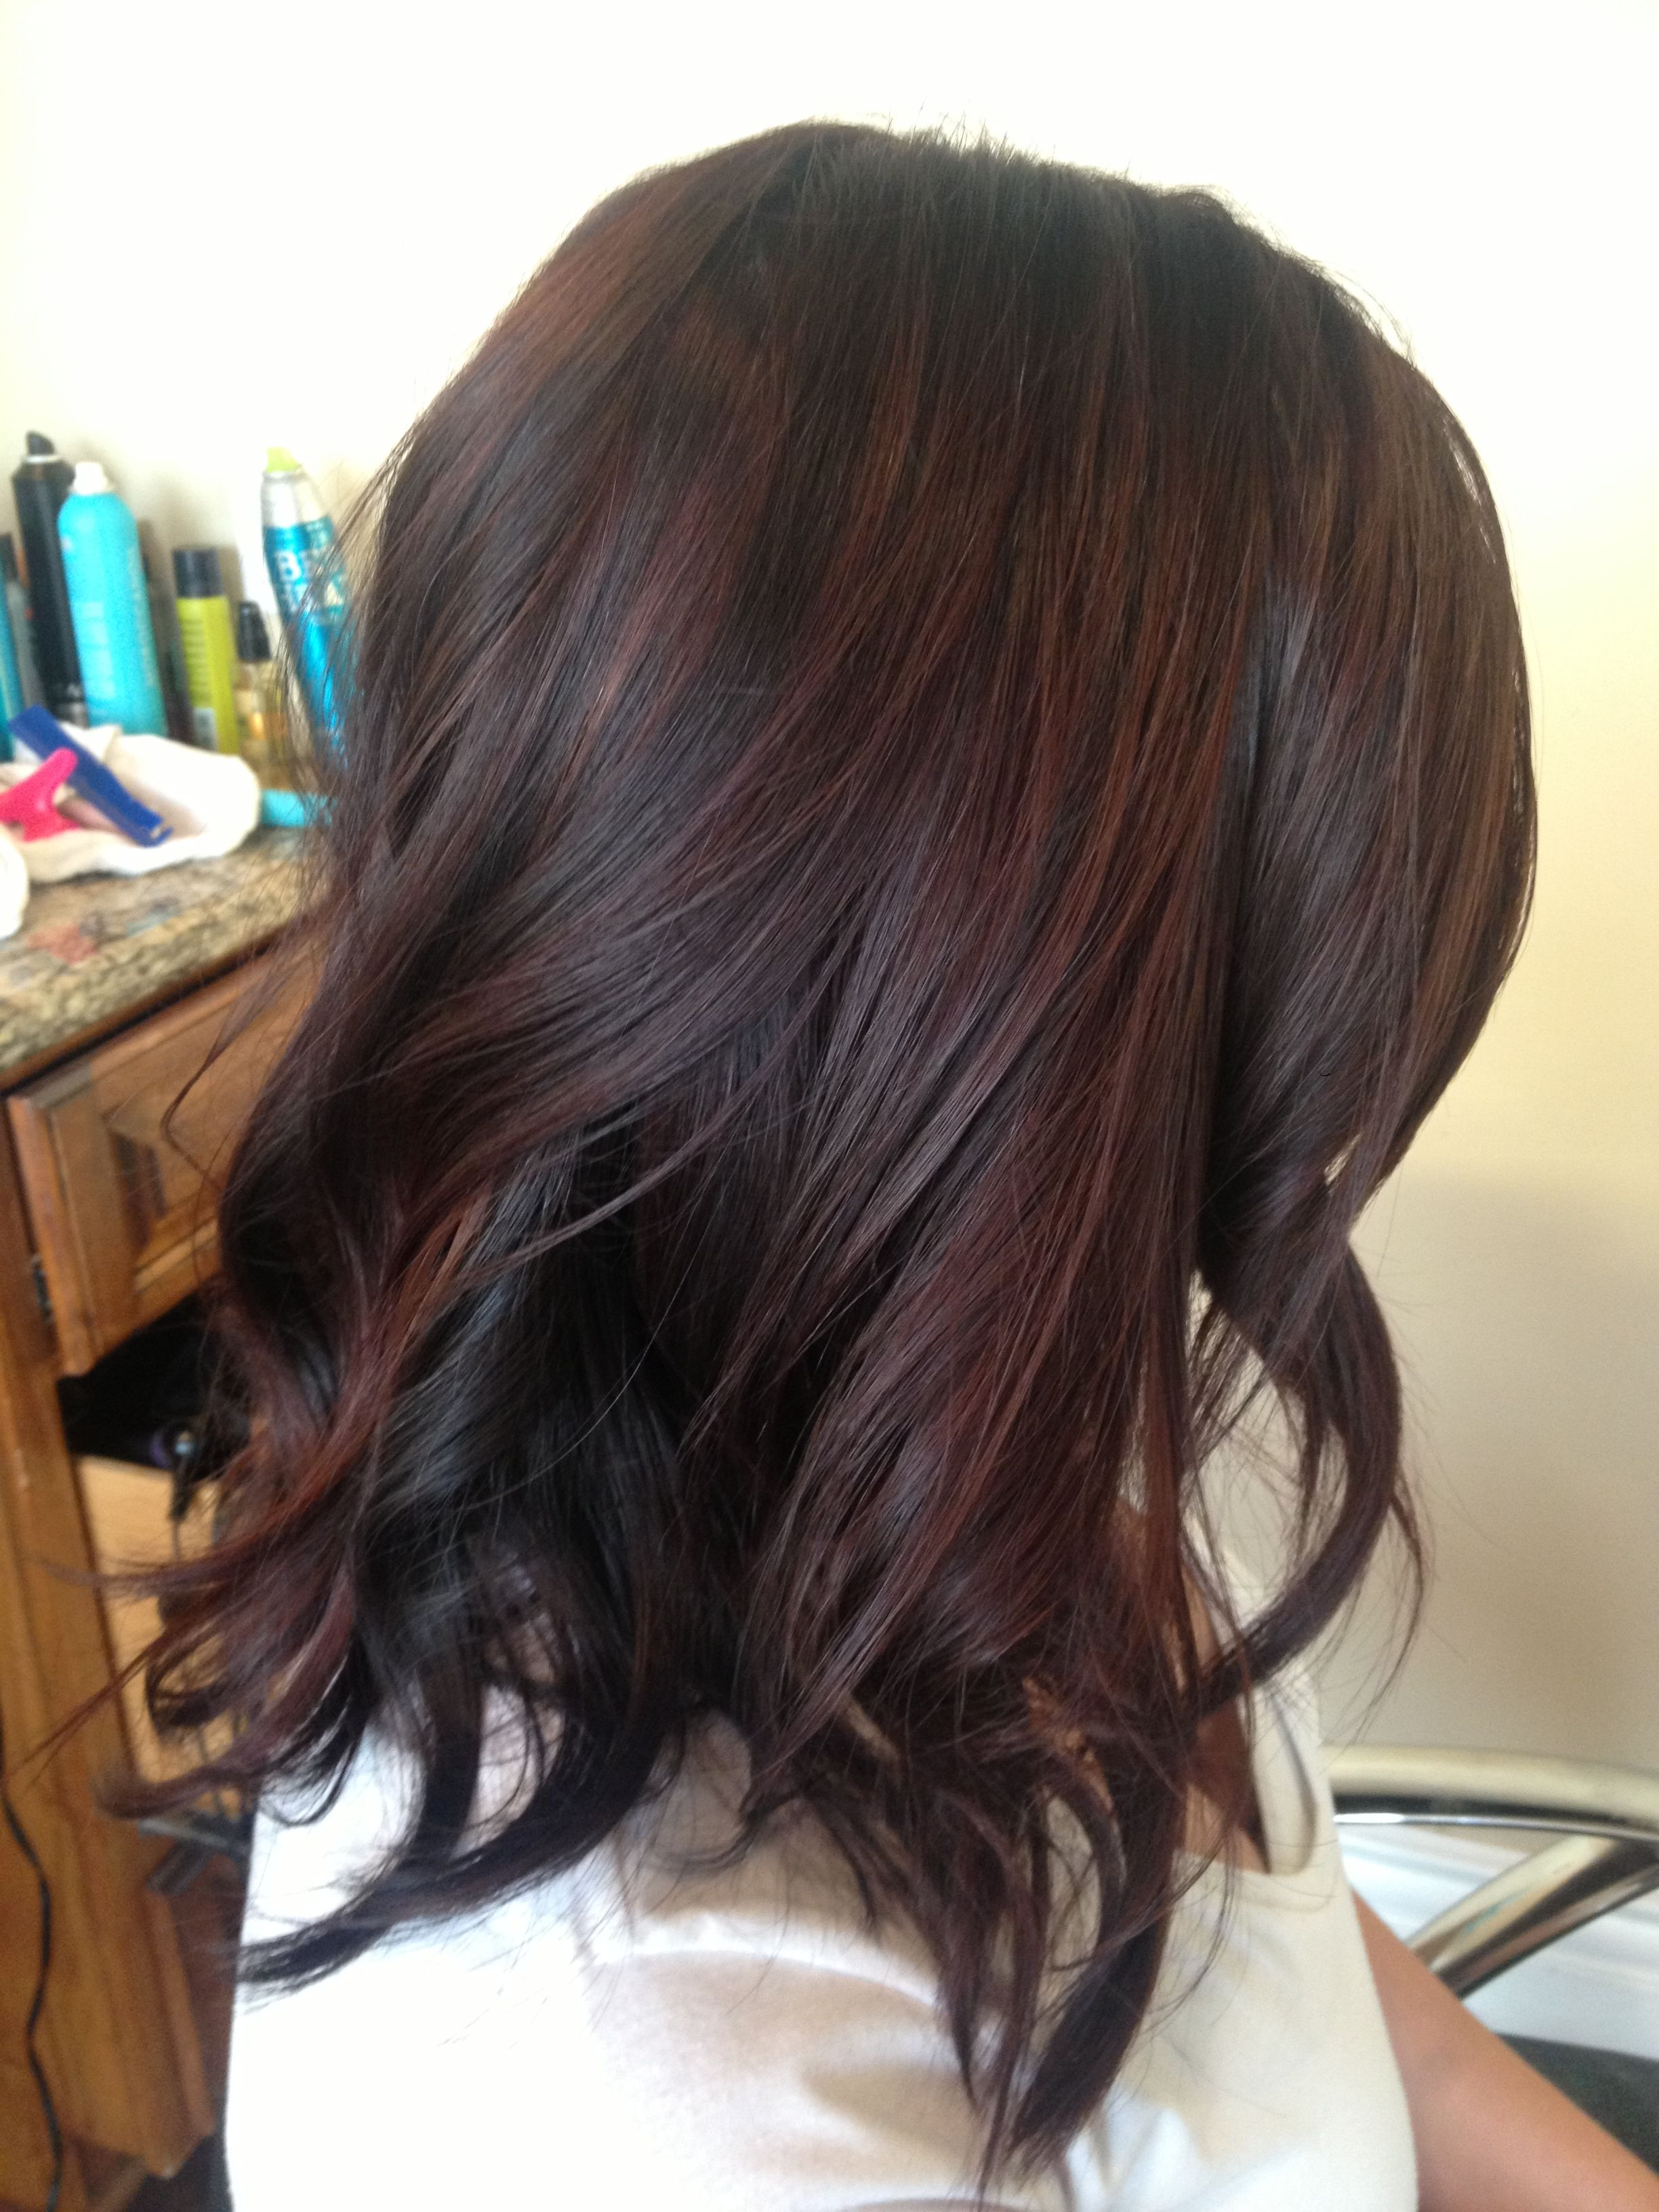 I Wish I Could Pull This Look Off Brown And Red Hair With Highlights Theresa Copeland Hair Color Hair Highlights Hair Styles